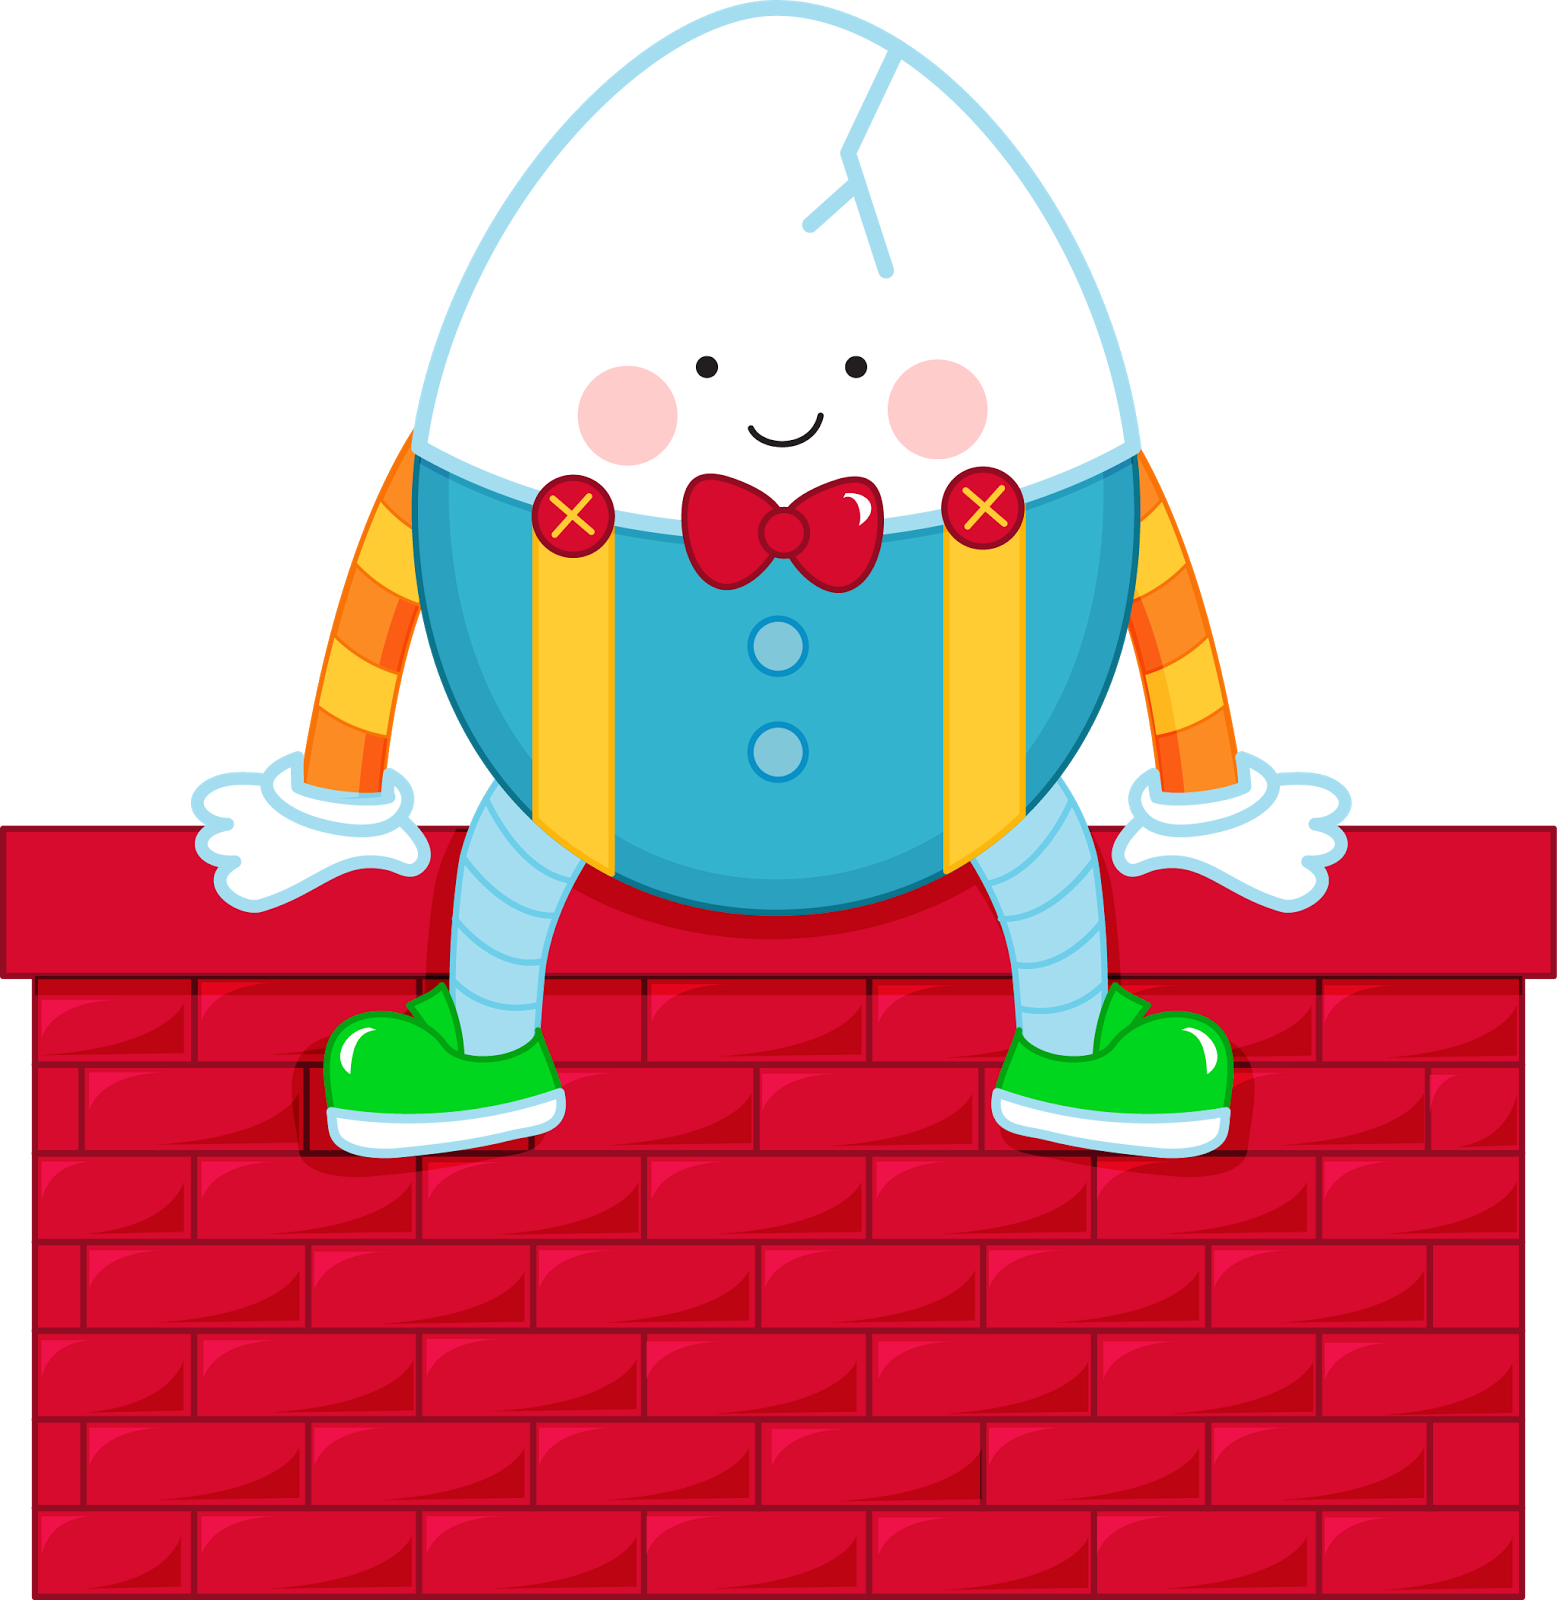 graphic free . Humpty dumpty clipart.